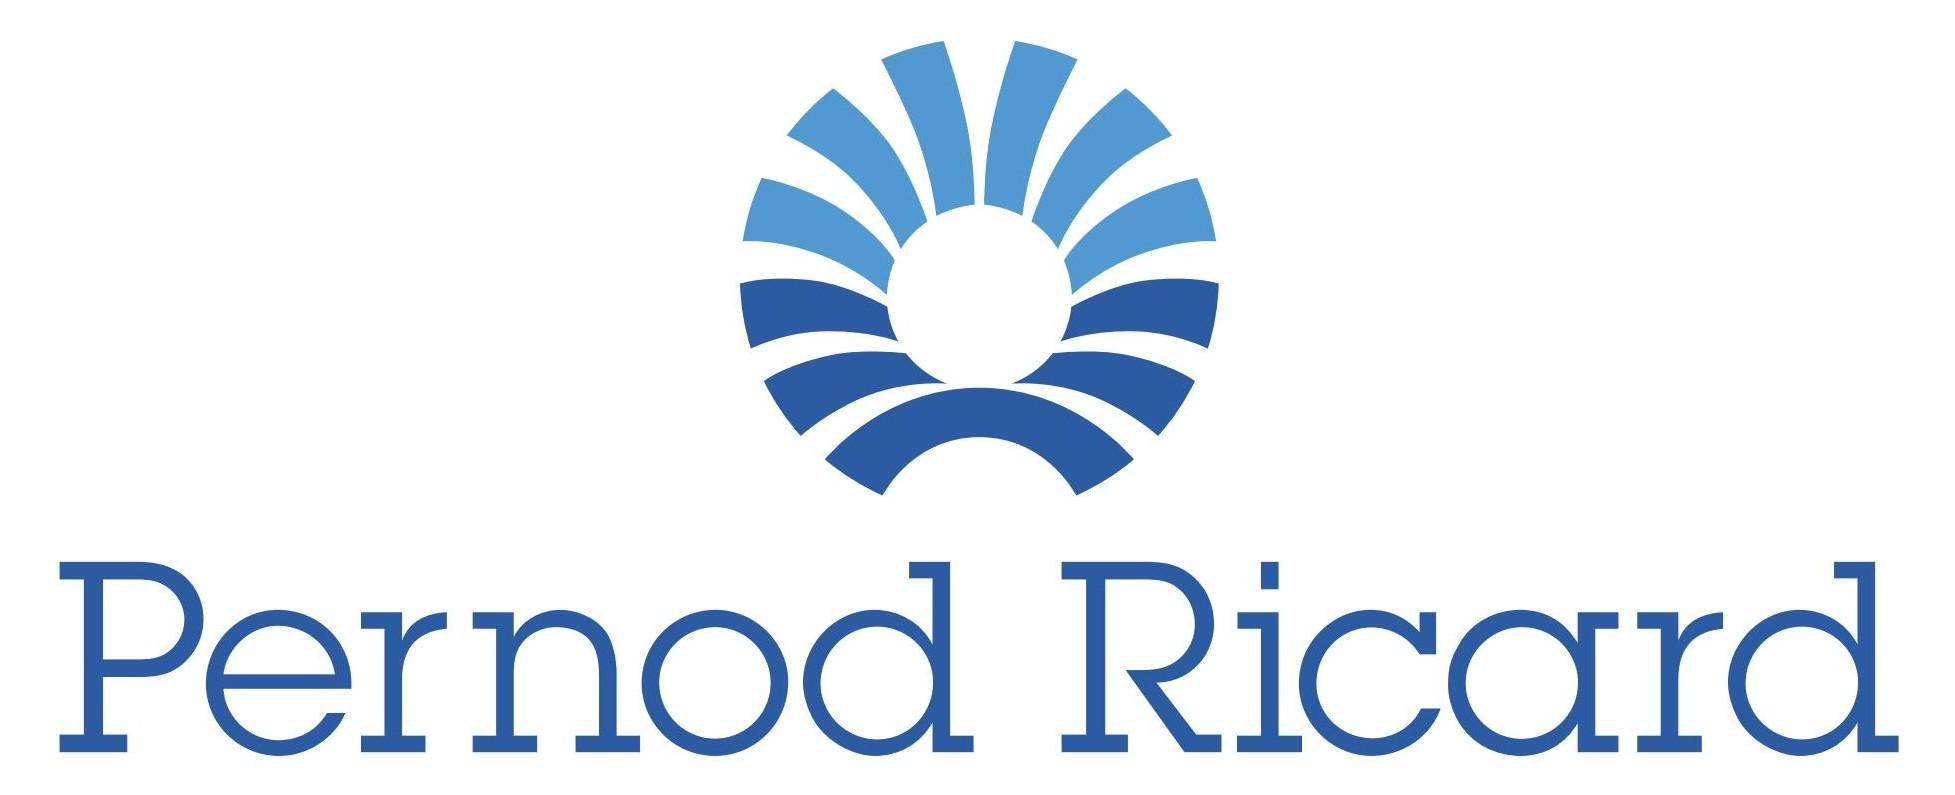 http://www.andlil.com/wp-content/uploads/2013/05/logo-Pernod-Ricard.jpg